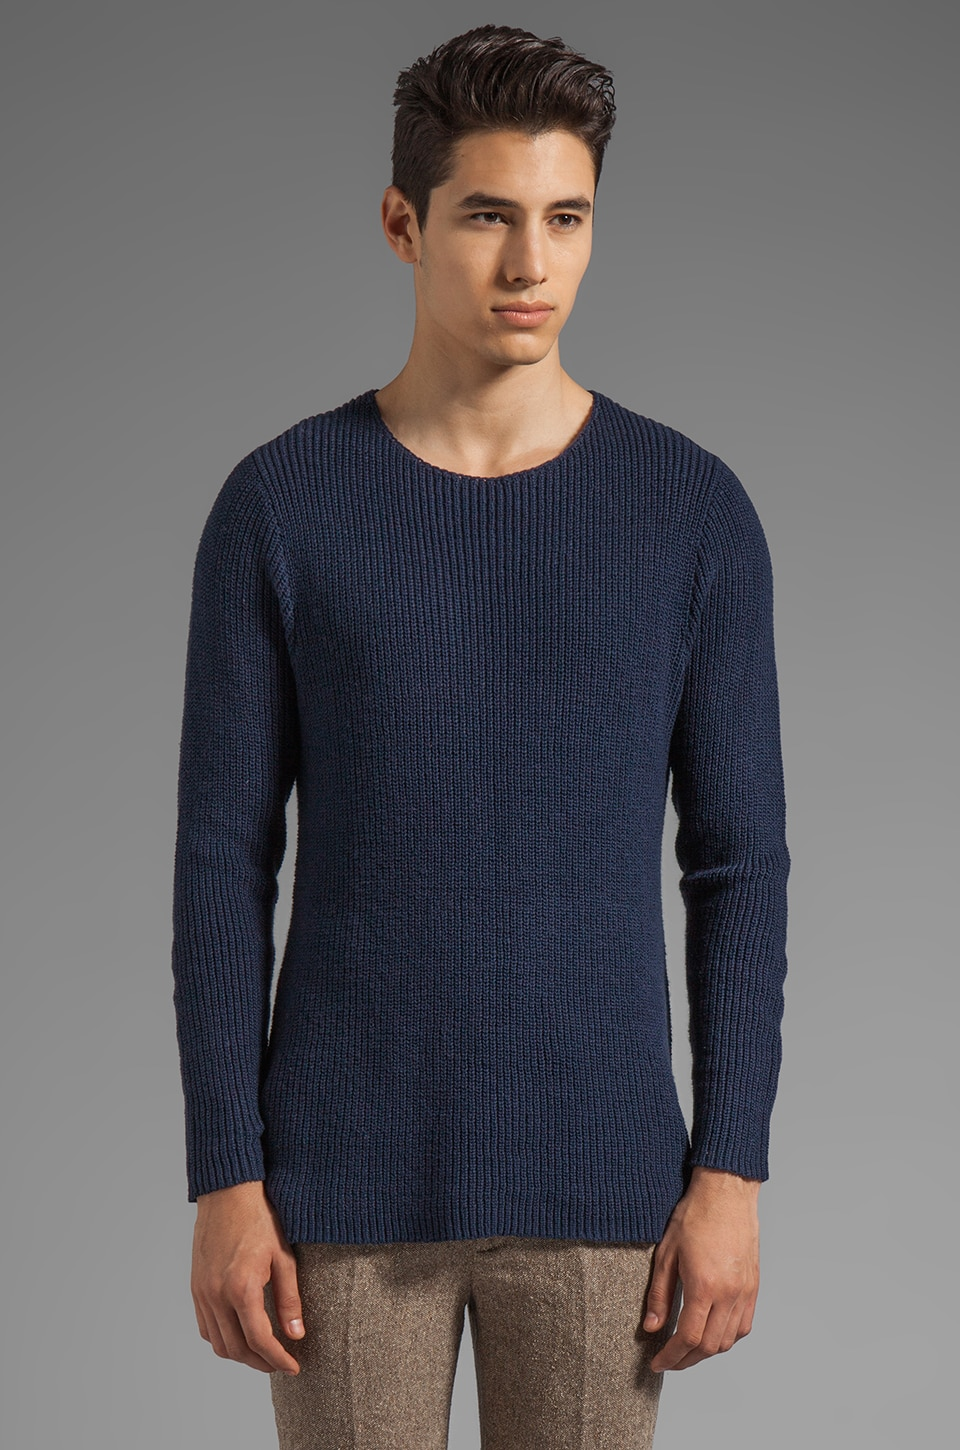 GANT Rugger The Cutpurse Pullover in Navy